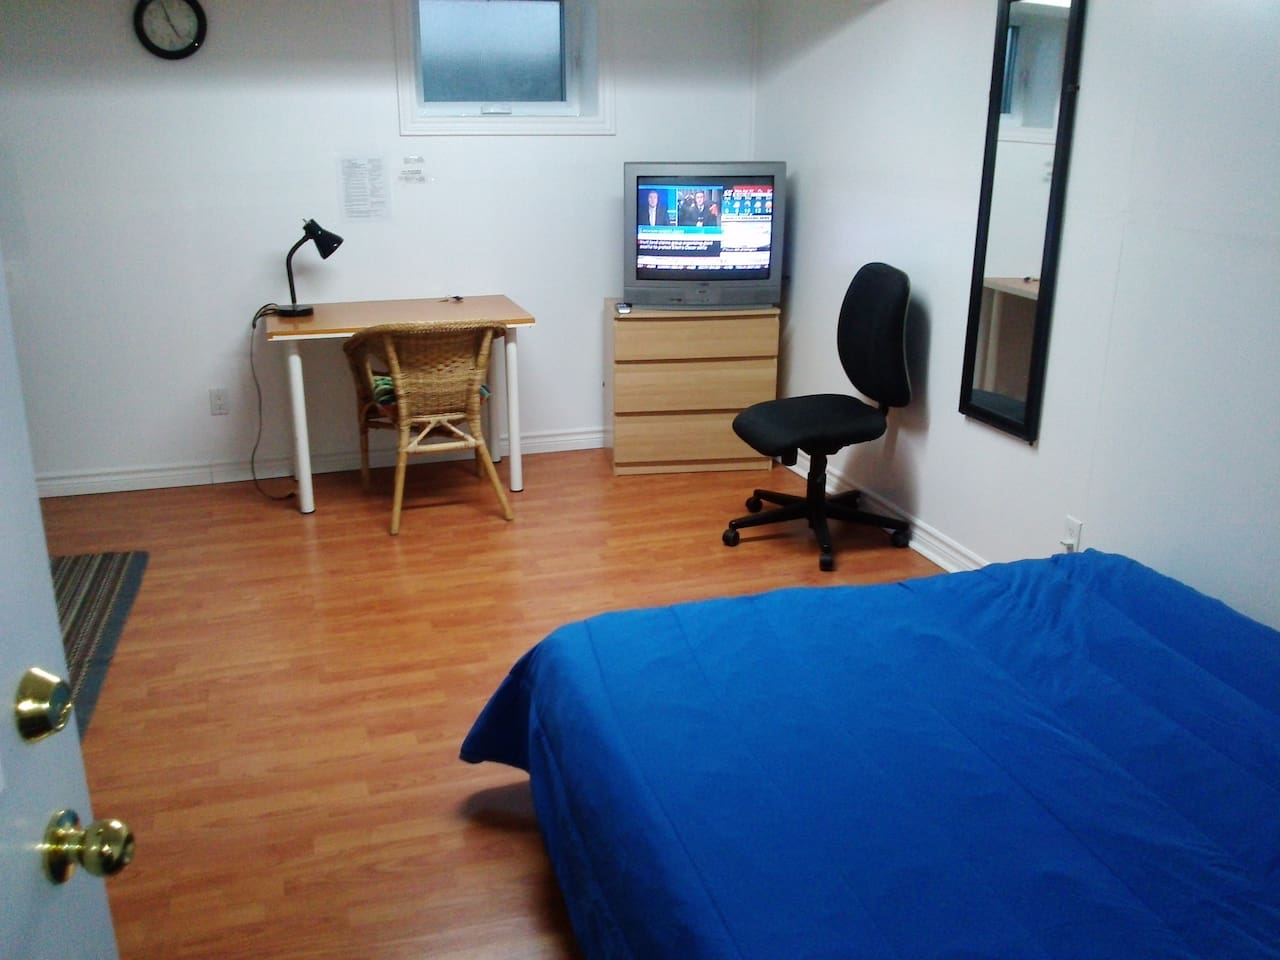 Writing table, small chest of drawers, Cable TV, 2 chairs.